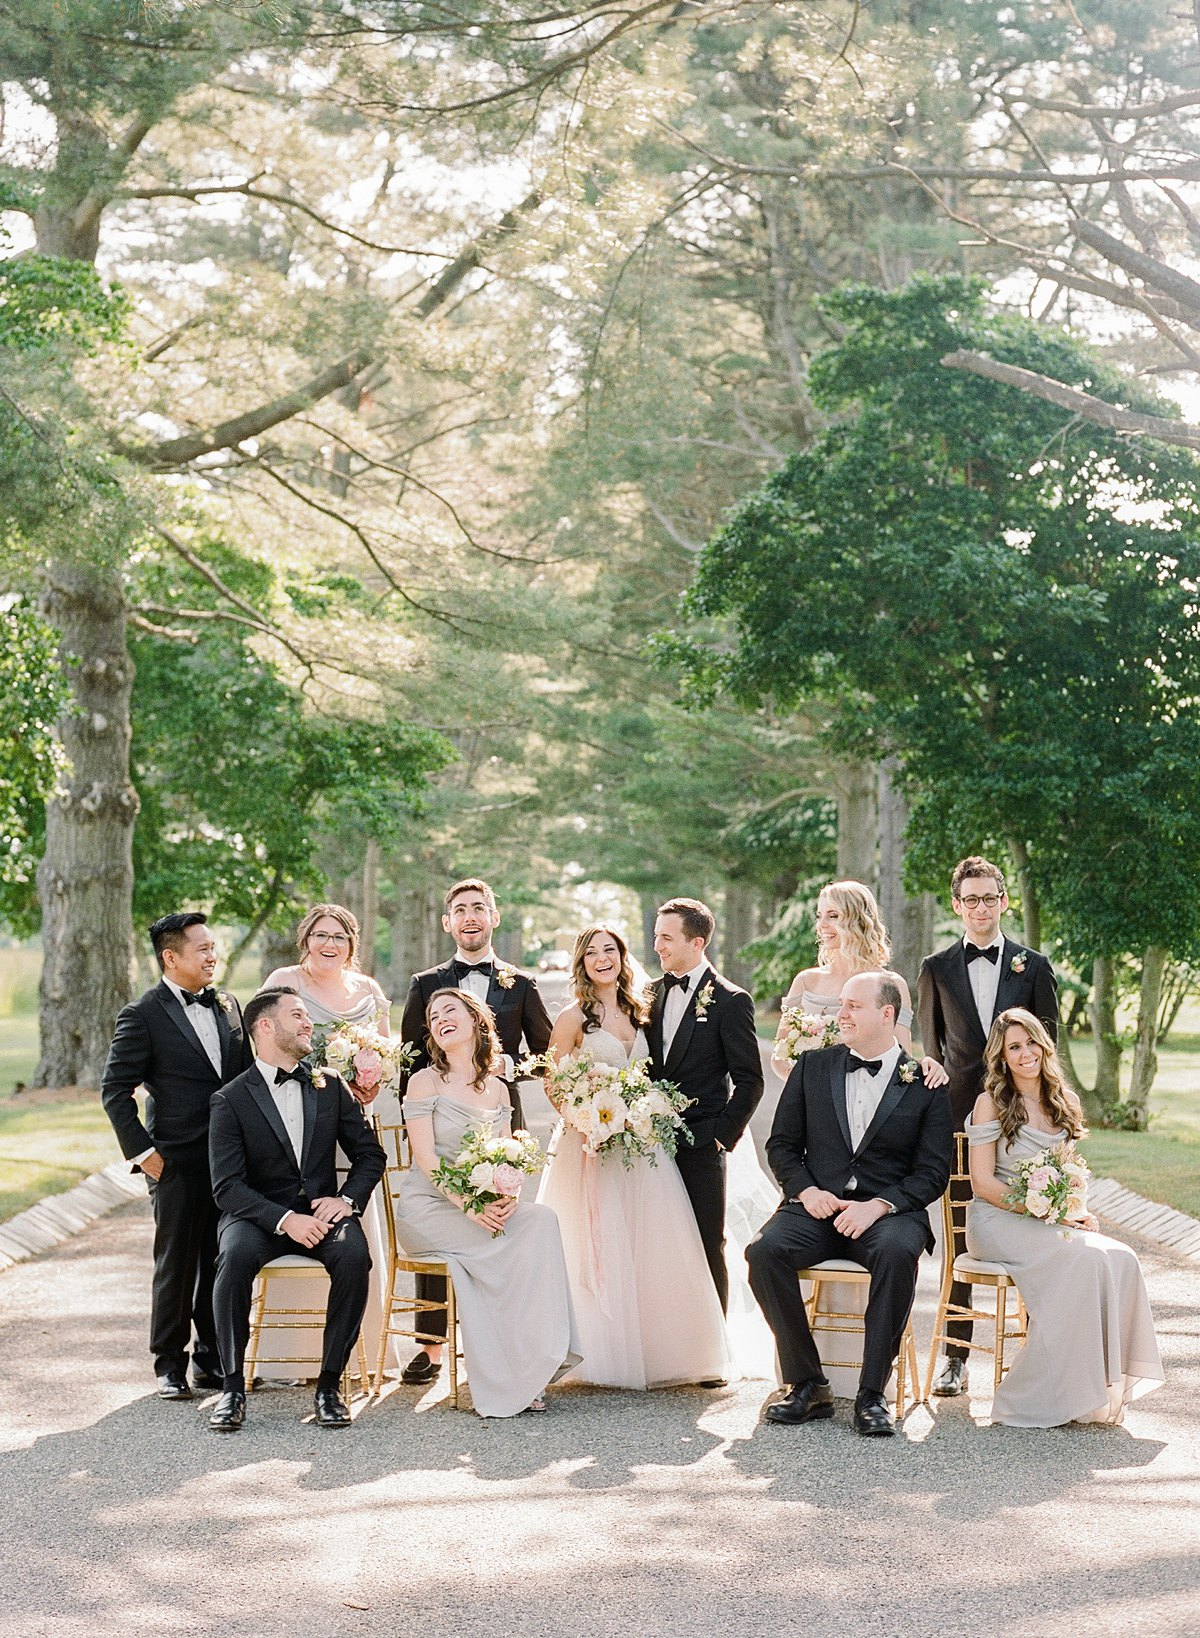 The Styled Bride | Ashford Estate | Rebecca Yale Photography